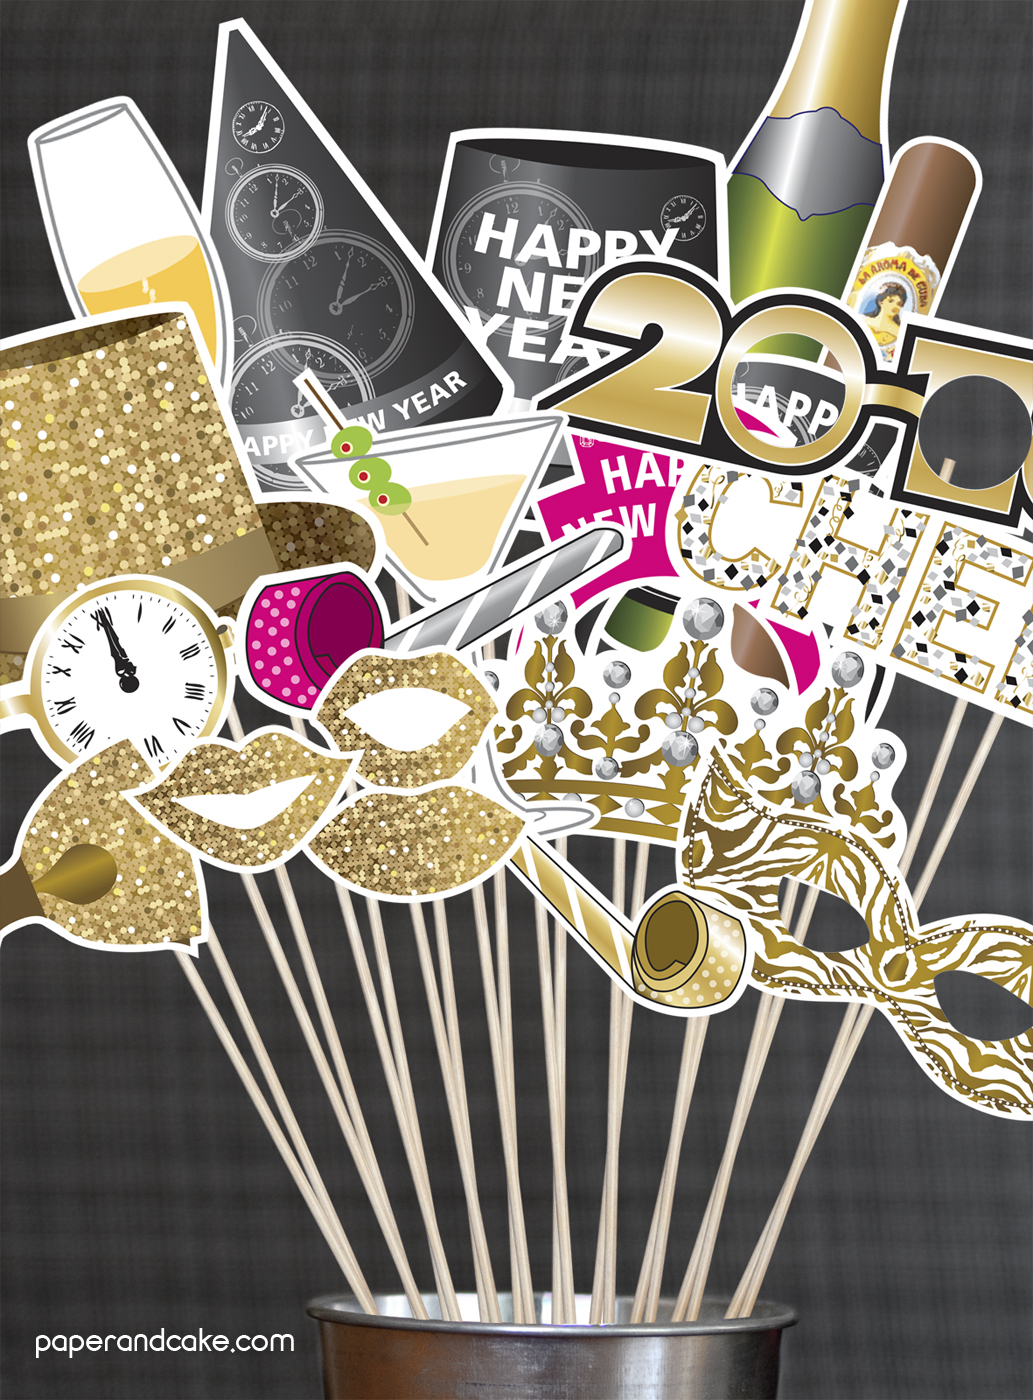 Happy New Year Photo Booth Props Diy Kit Paper And Cake Paper And Cake